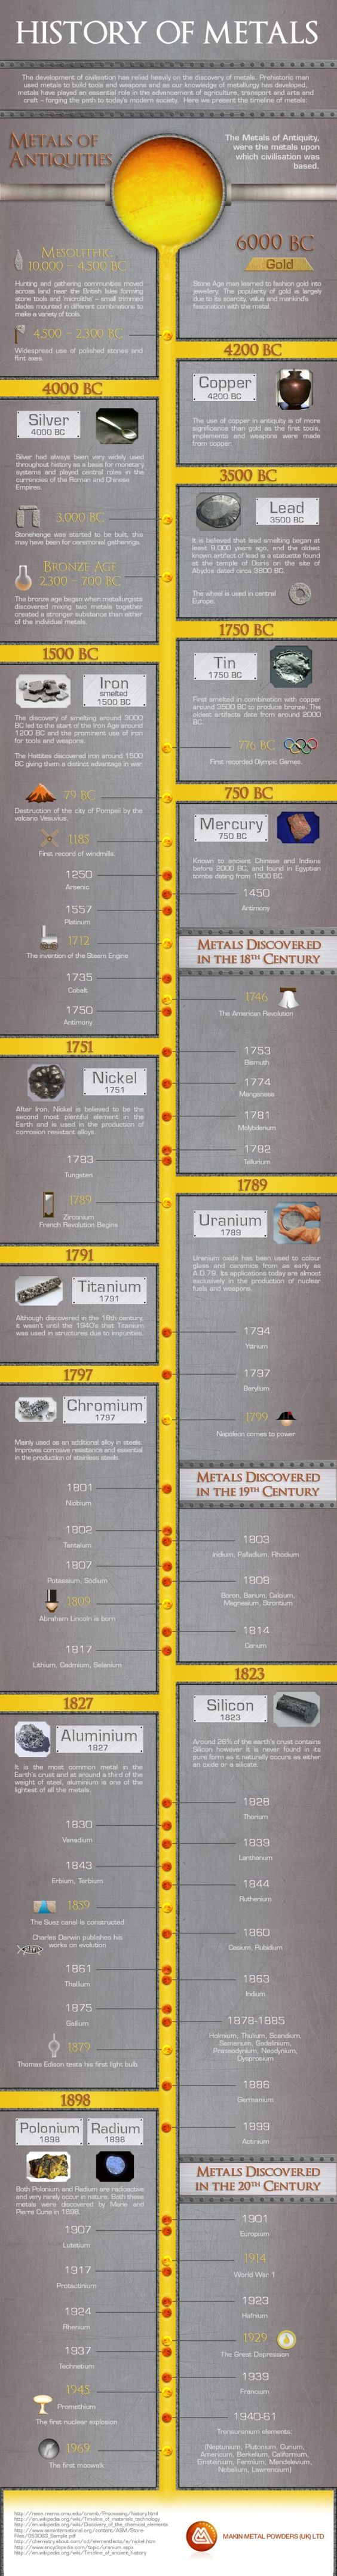 Metals Infographic And History On Pinterest